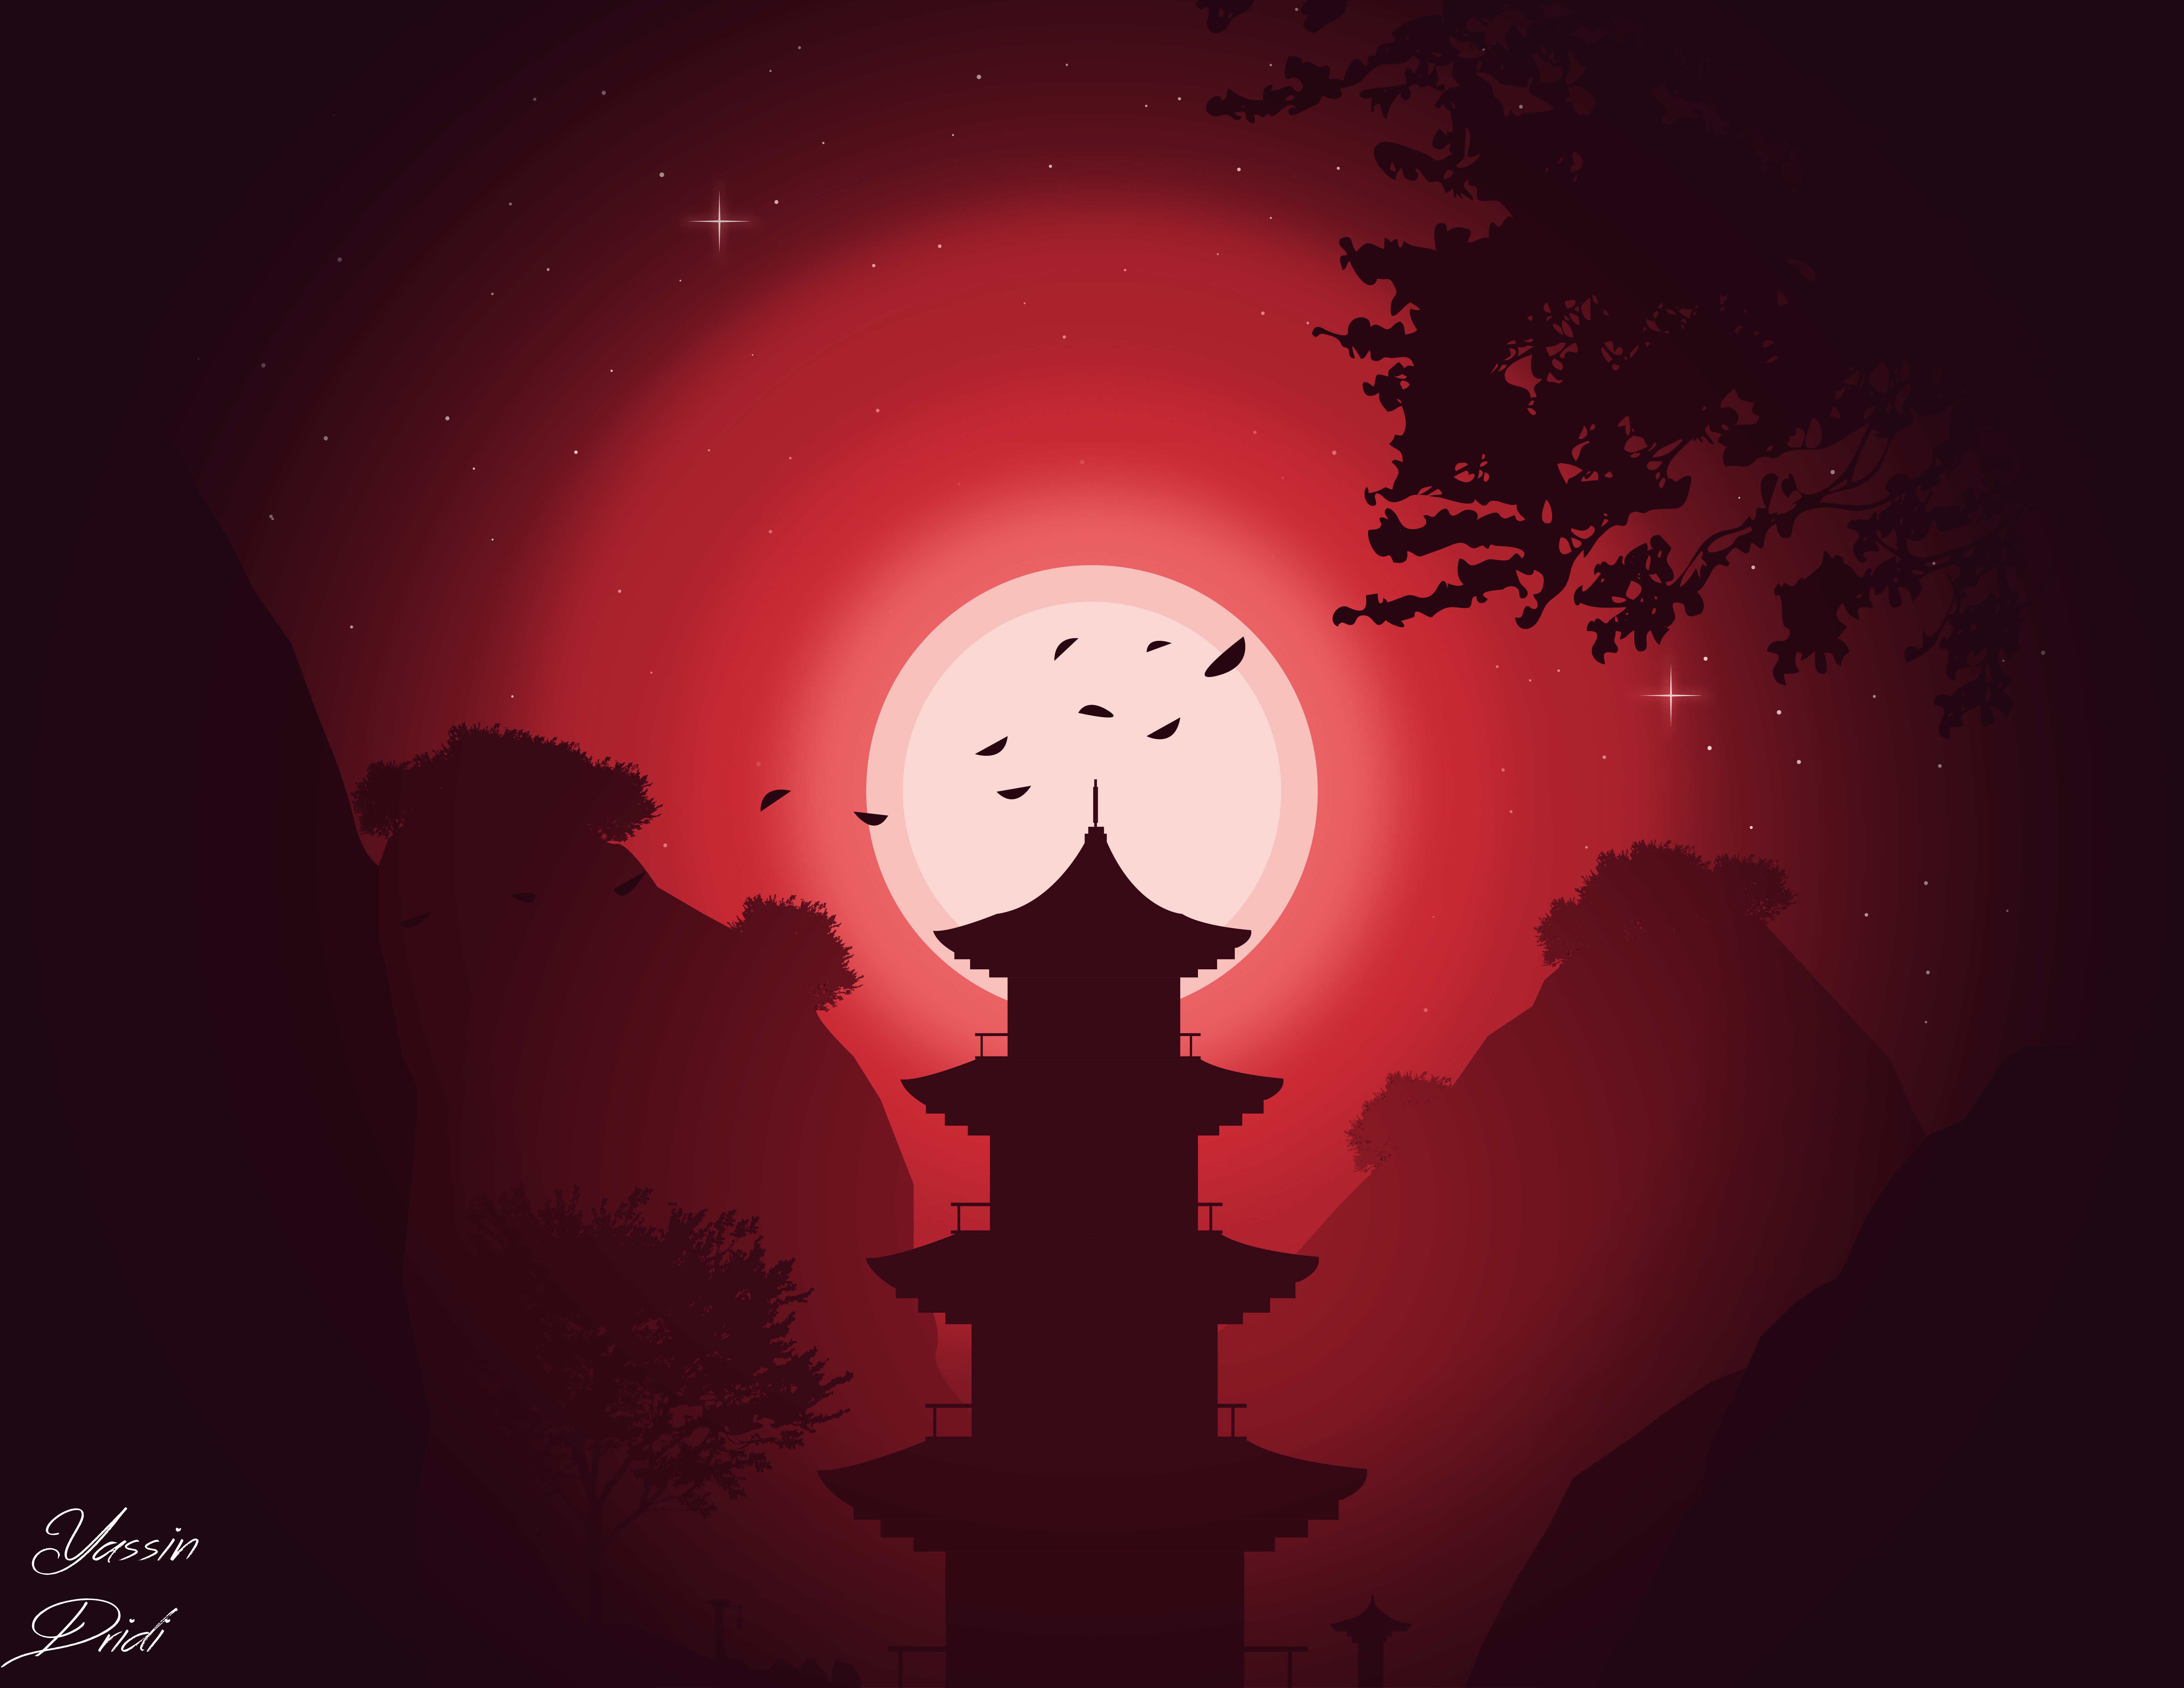 83434 download wallpaper Art, Night, Moon, Vector, Building screensavers and pictures for free